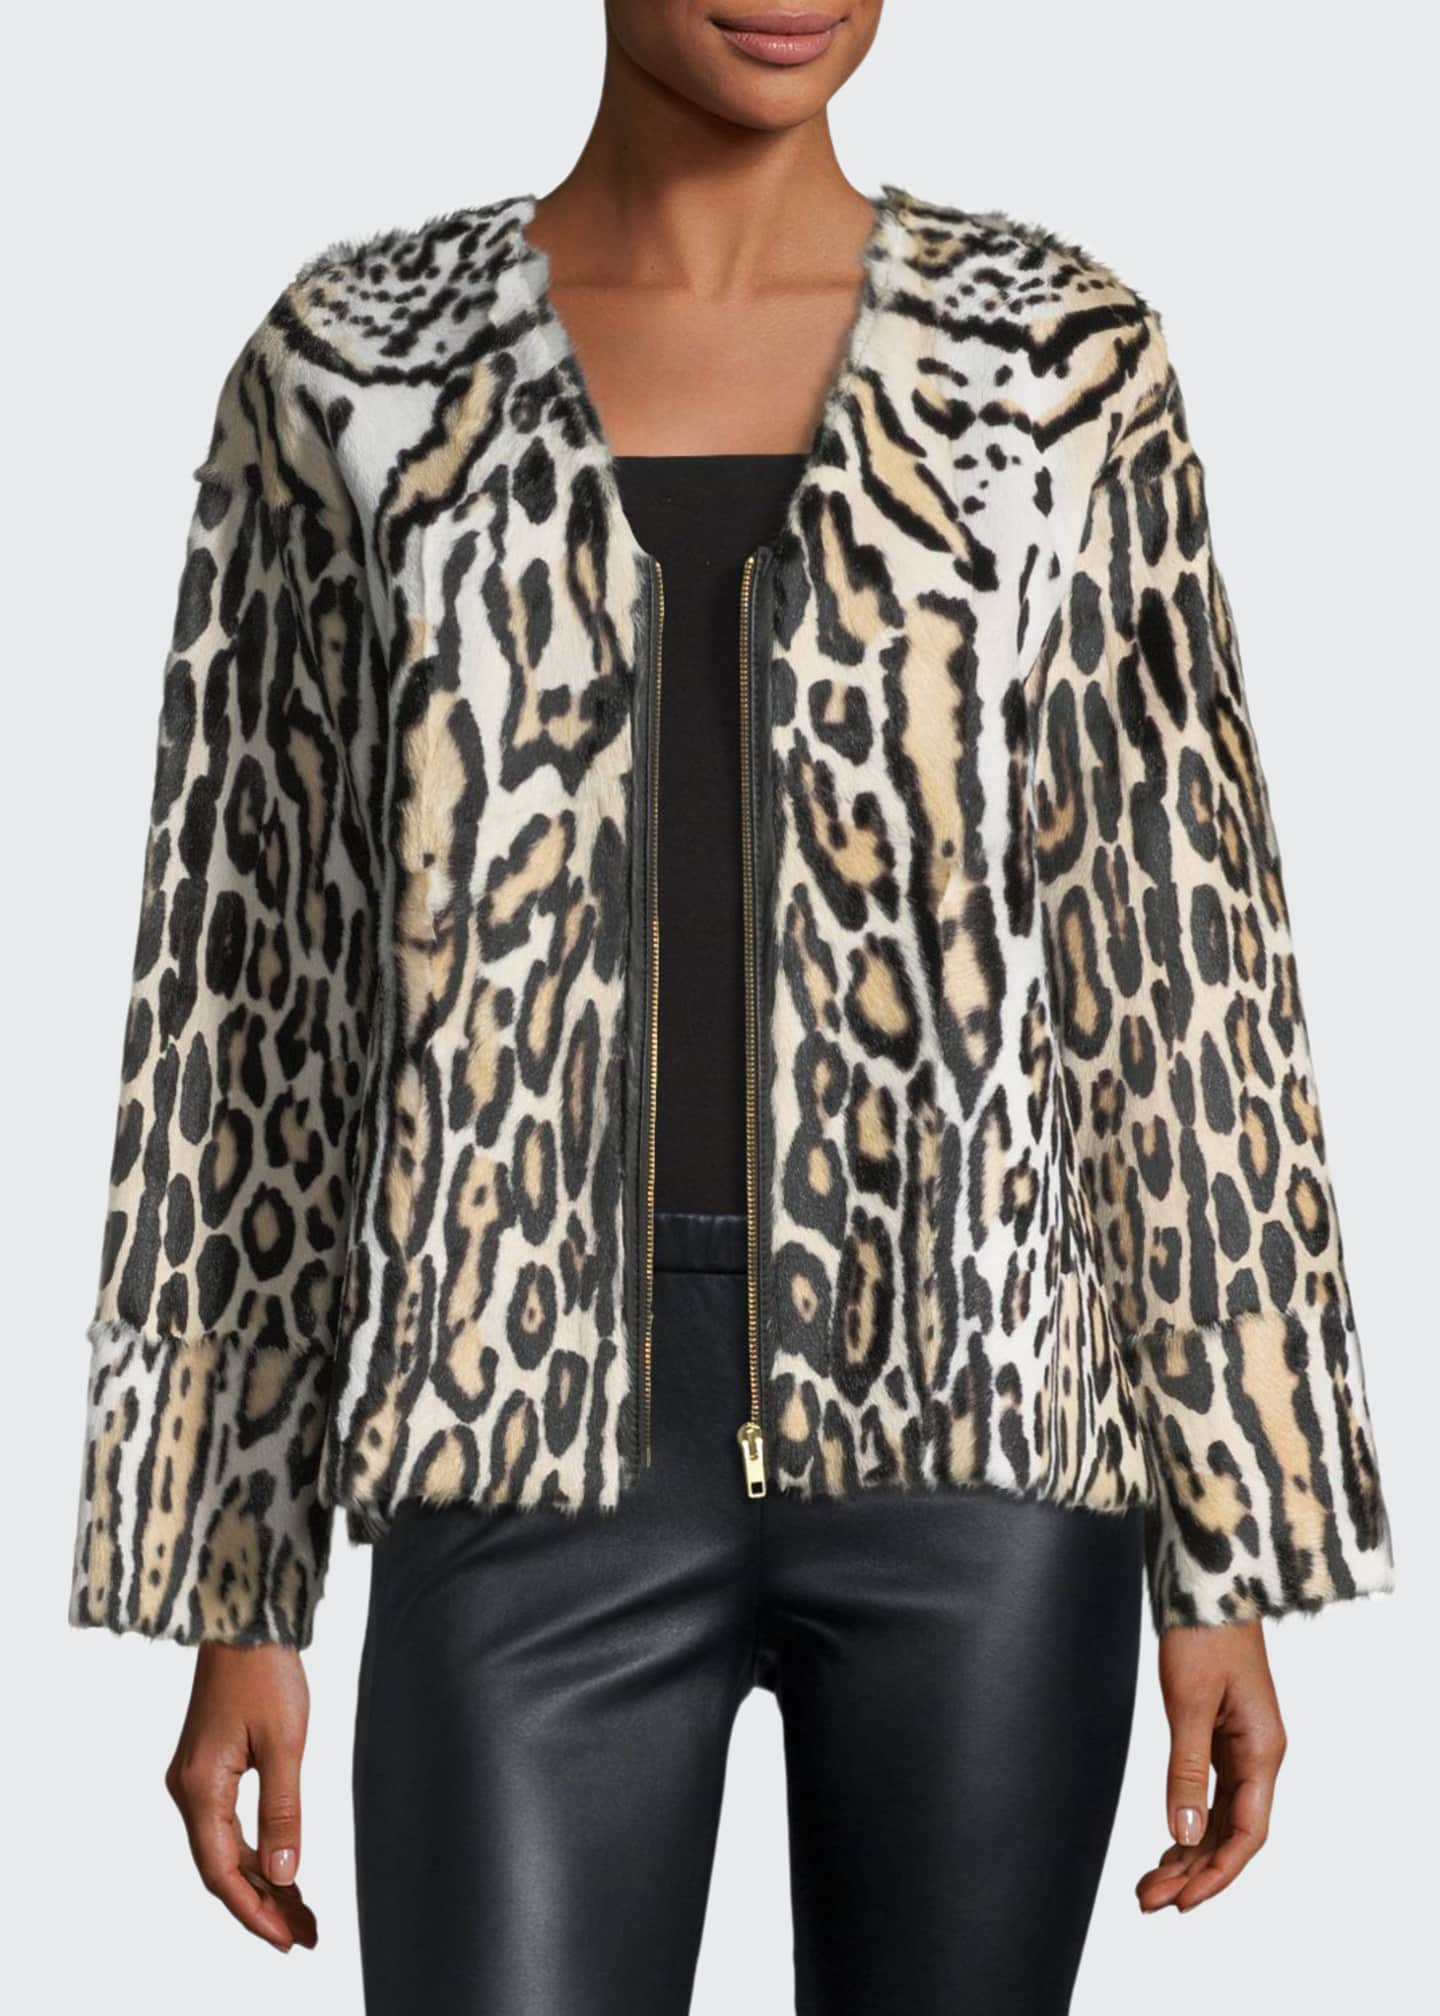 Image 1 of 3: UTZON LEOPARD JACKET